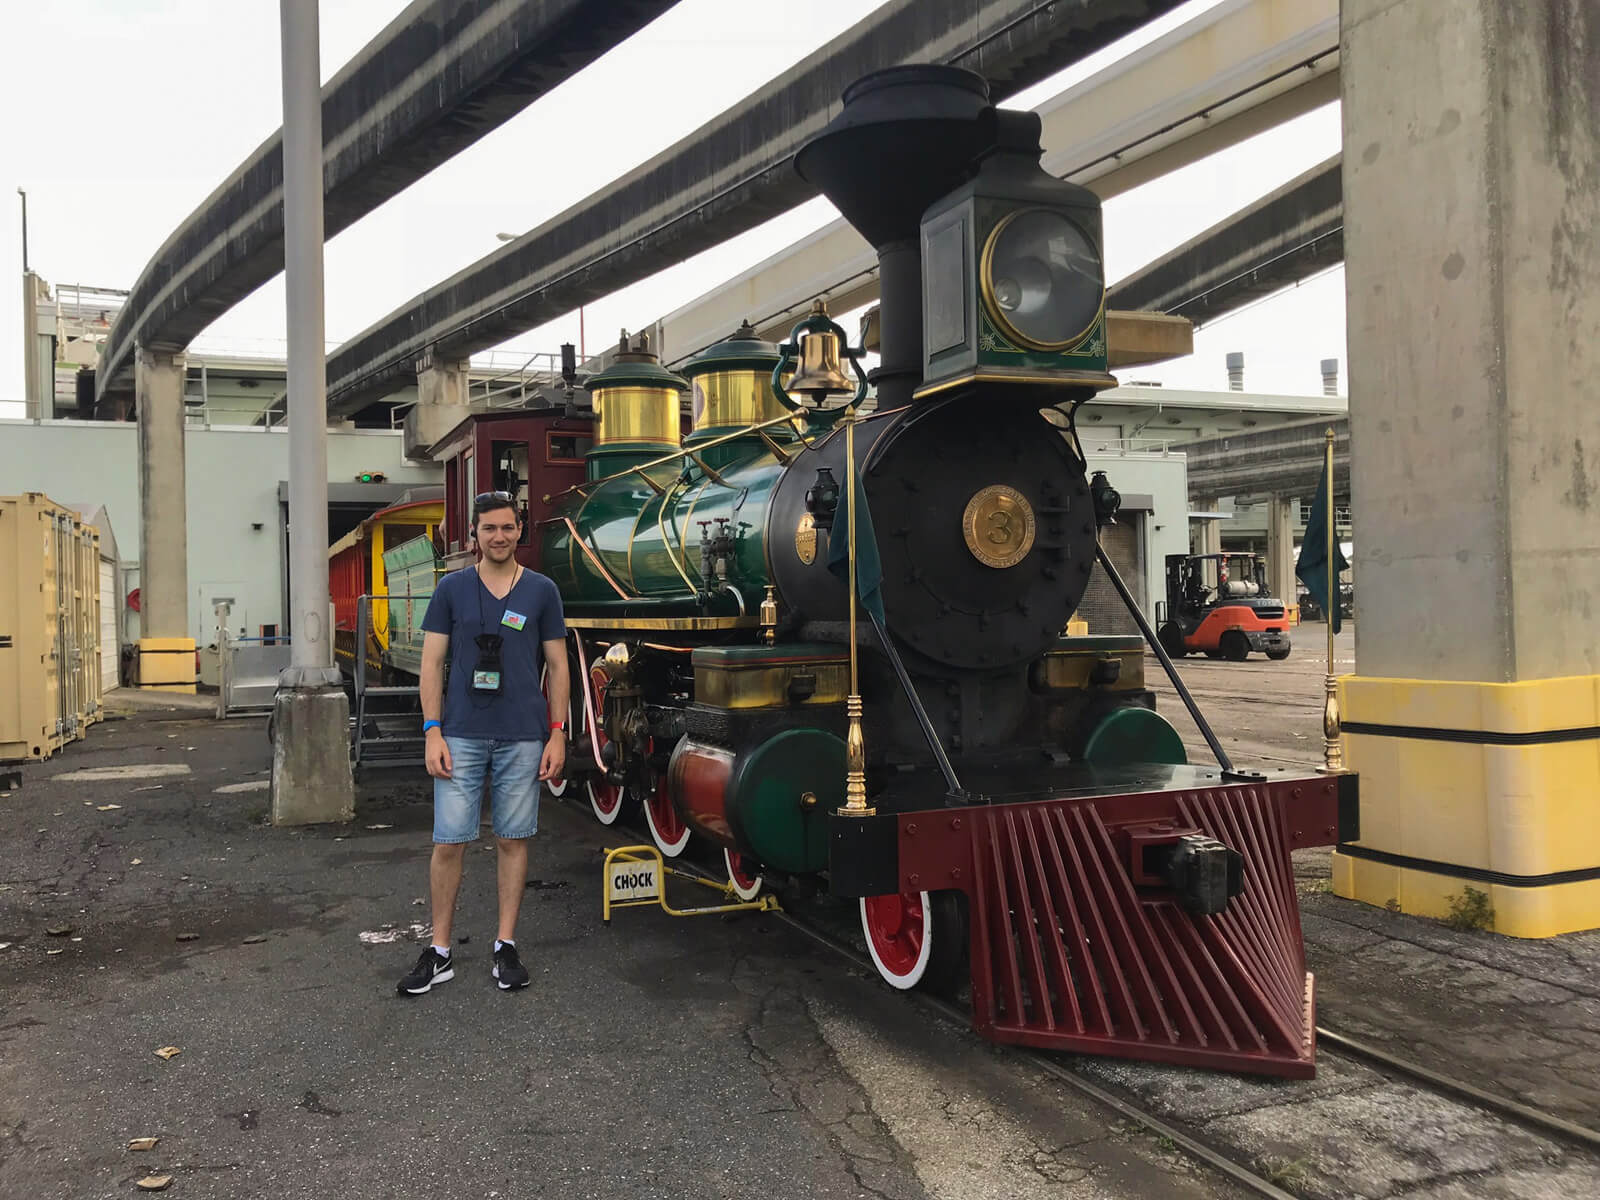 A man with a blue t-shirt and shorts standing next to a green and dark red steam locomotive